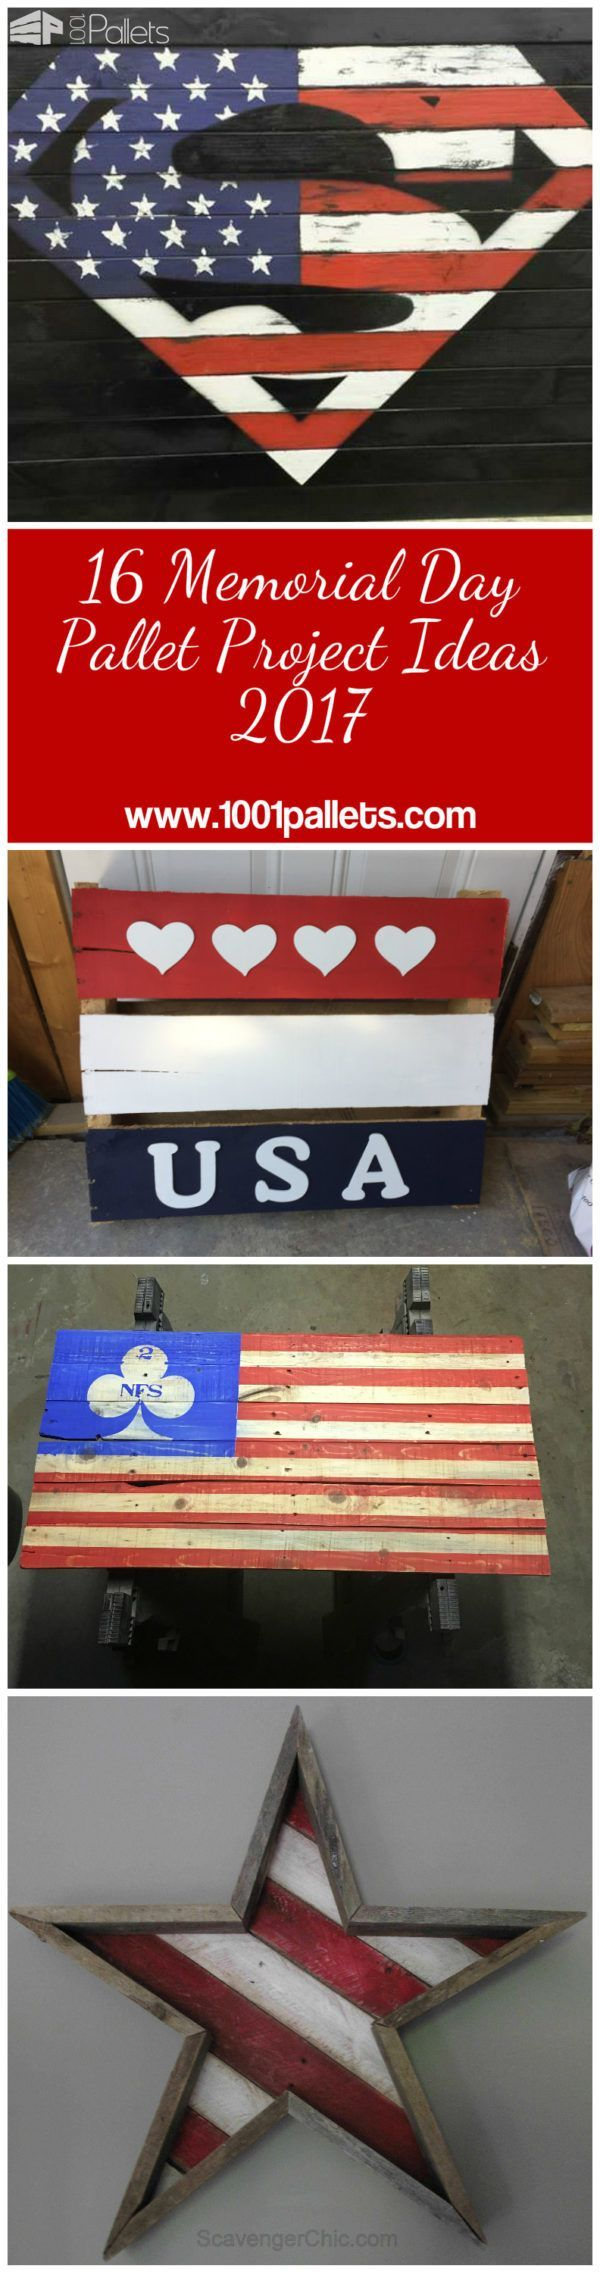 16 Memorial Day Pallet Project Ideas 2017